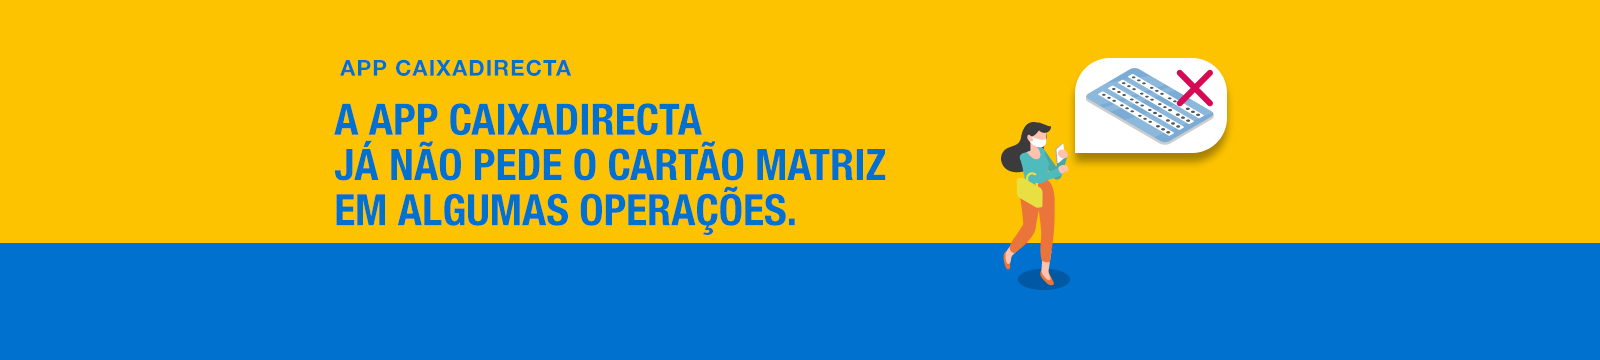 Dispensa do cartão matriz